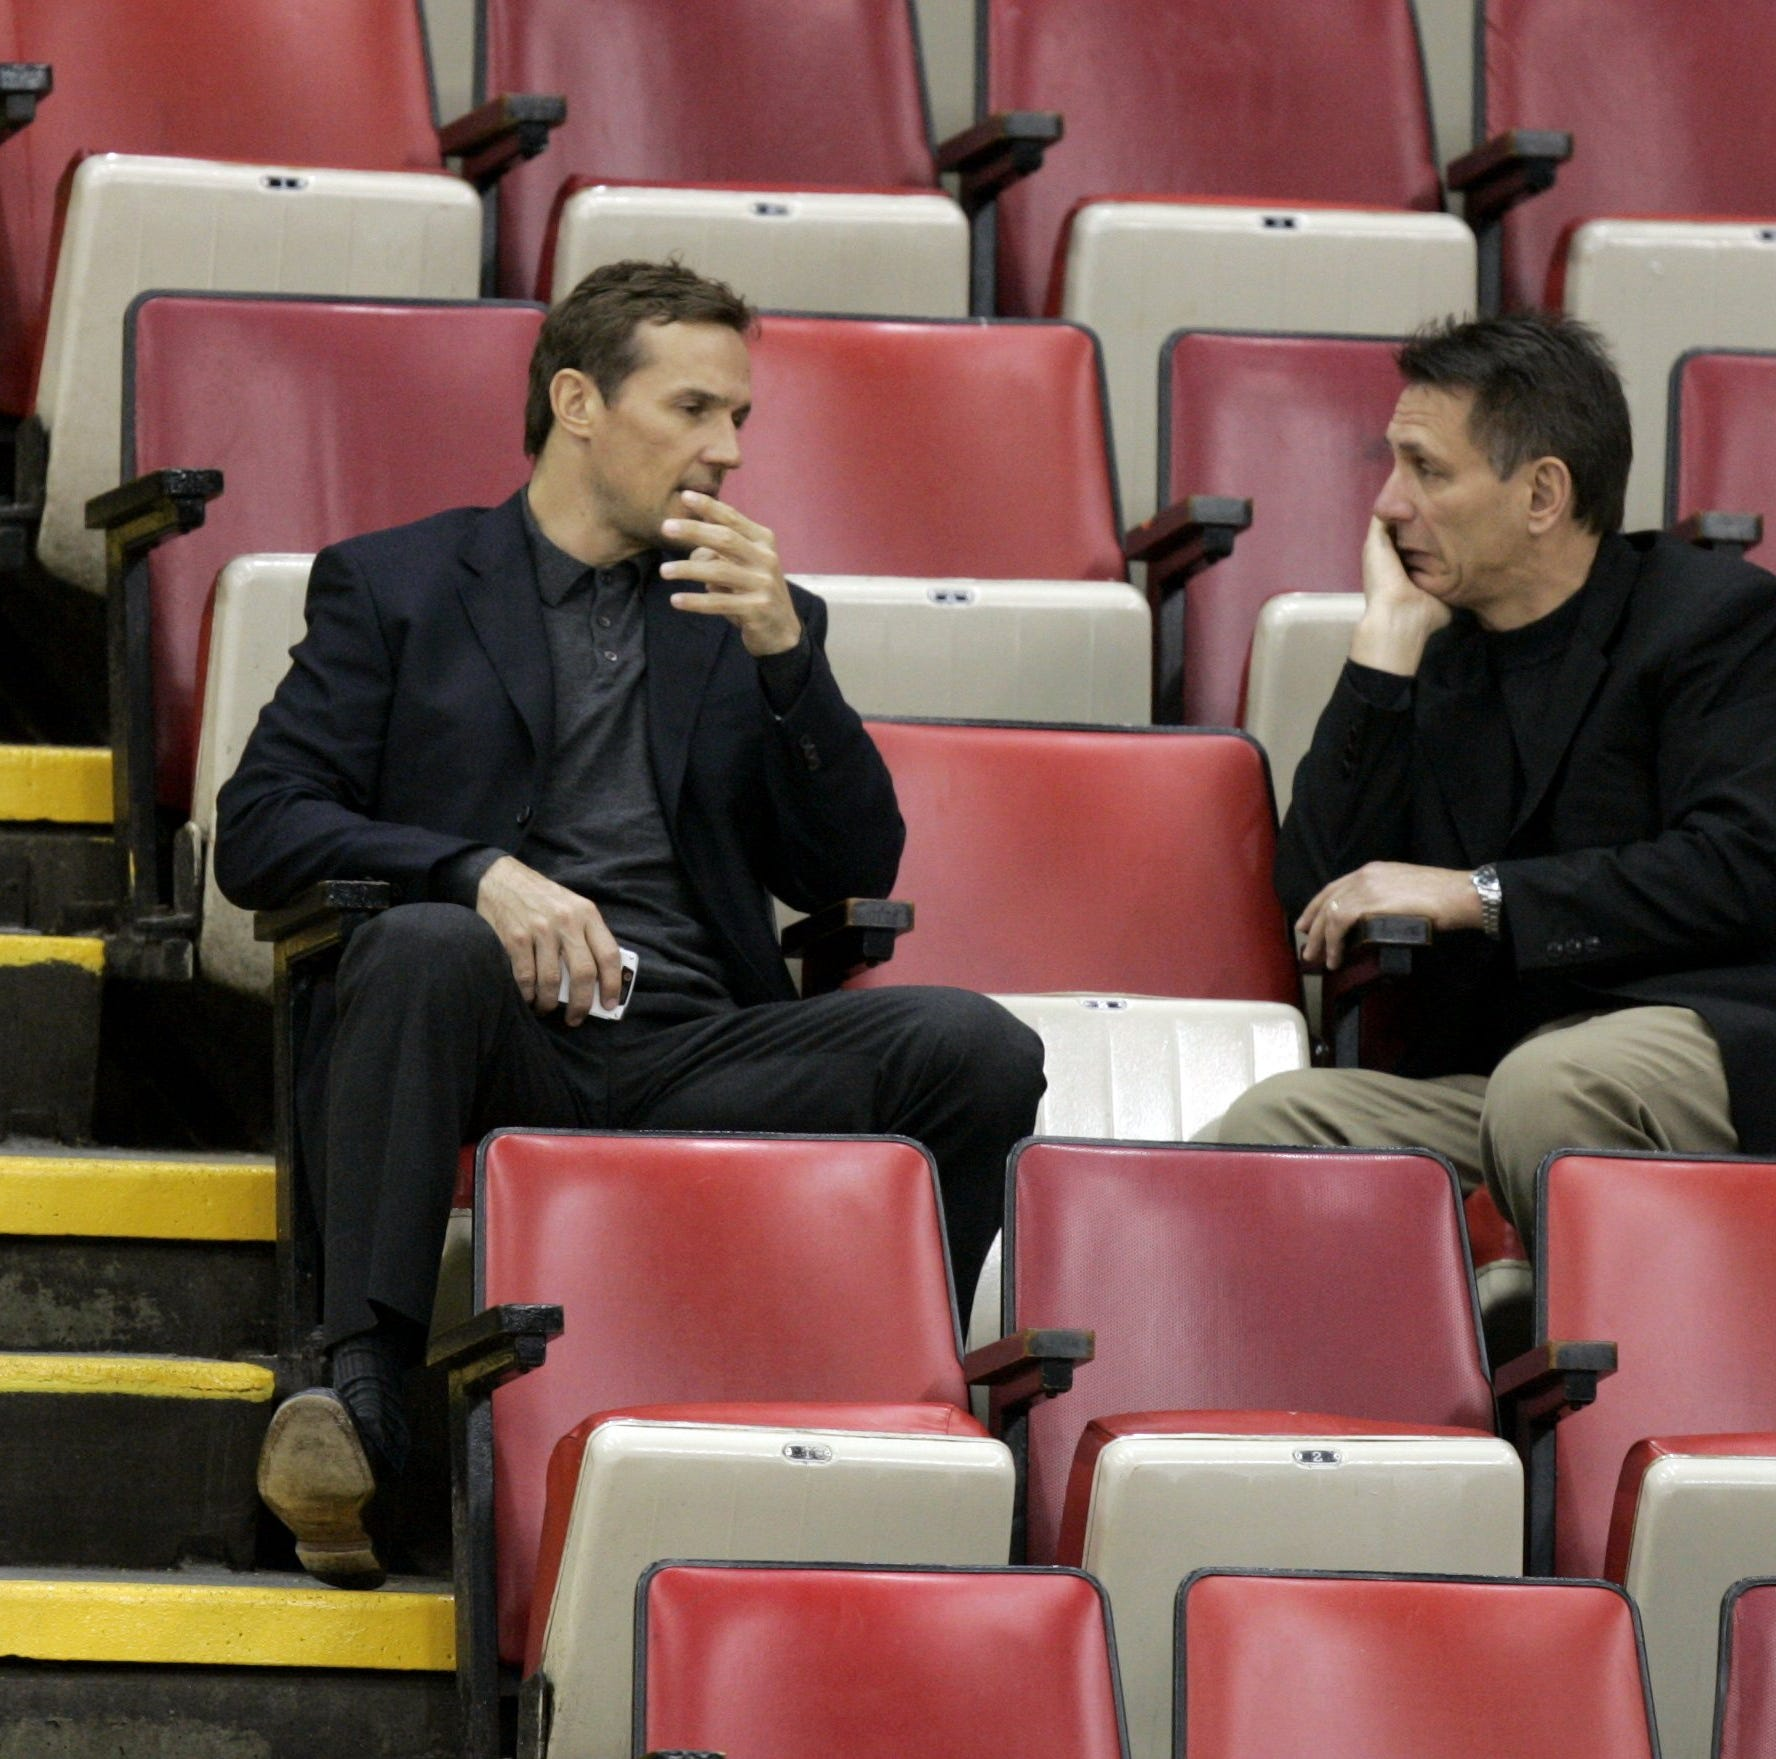 Detroit Red Wings' Ken Holland on Steve Yzerman rumors: 'We laugh about it'